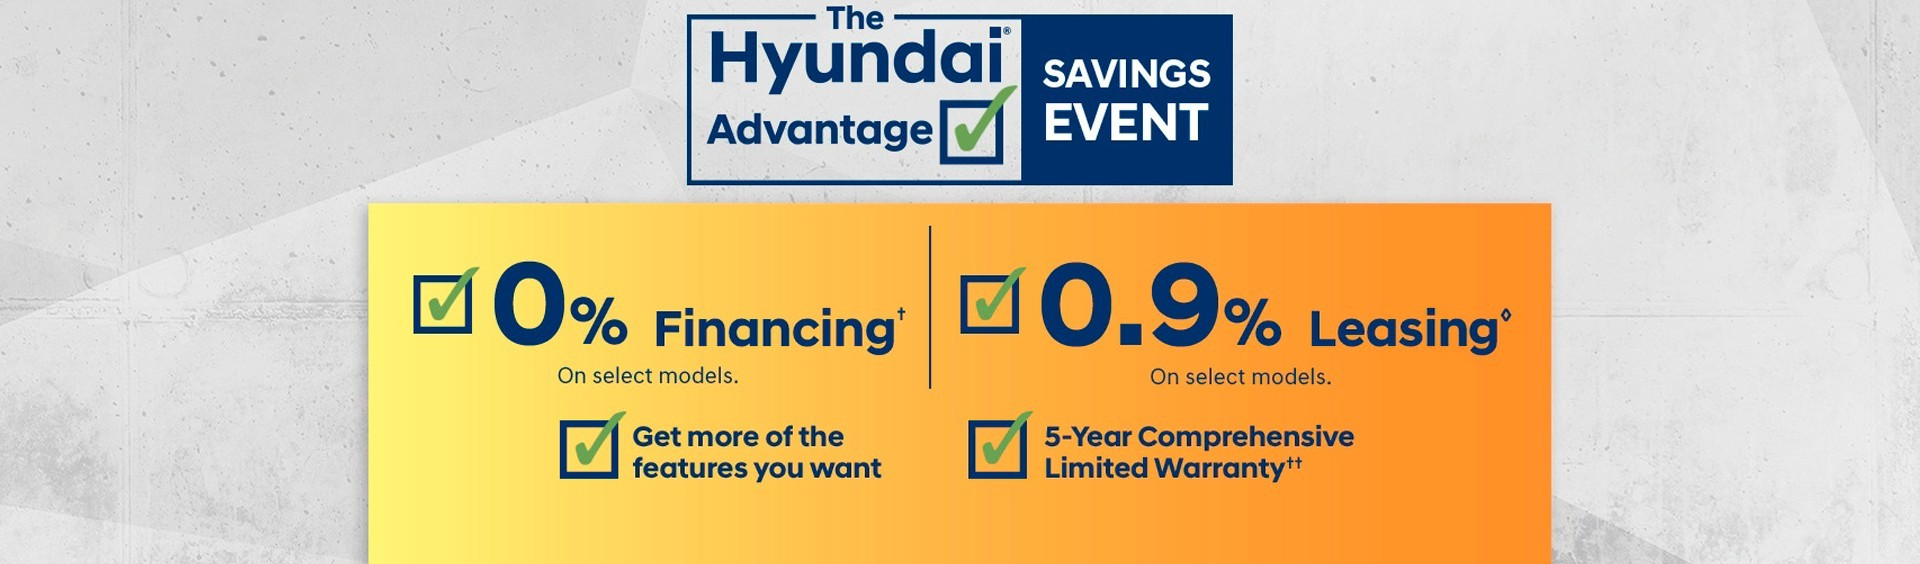 Hyundai Advantage Saving Event